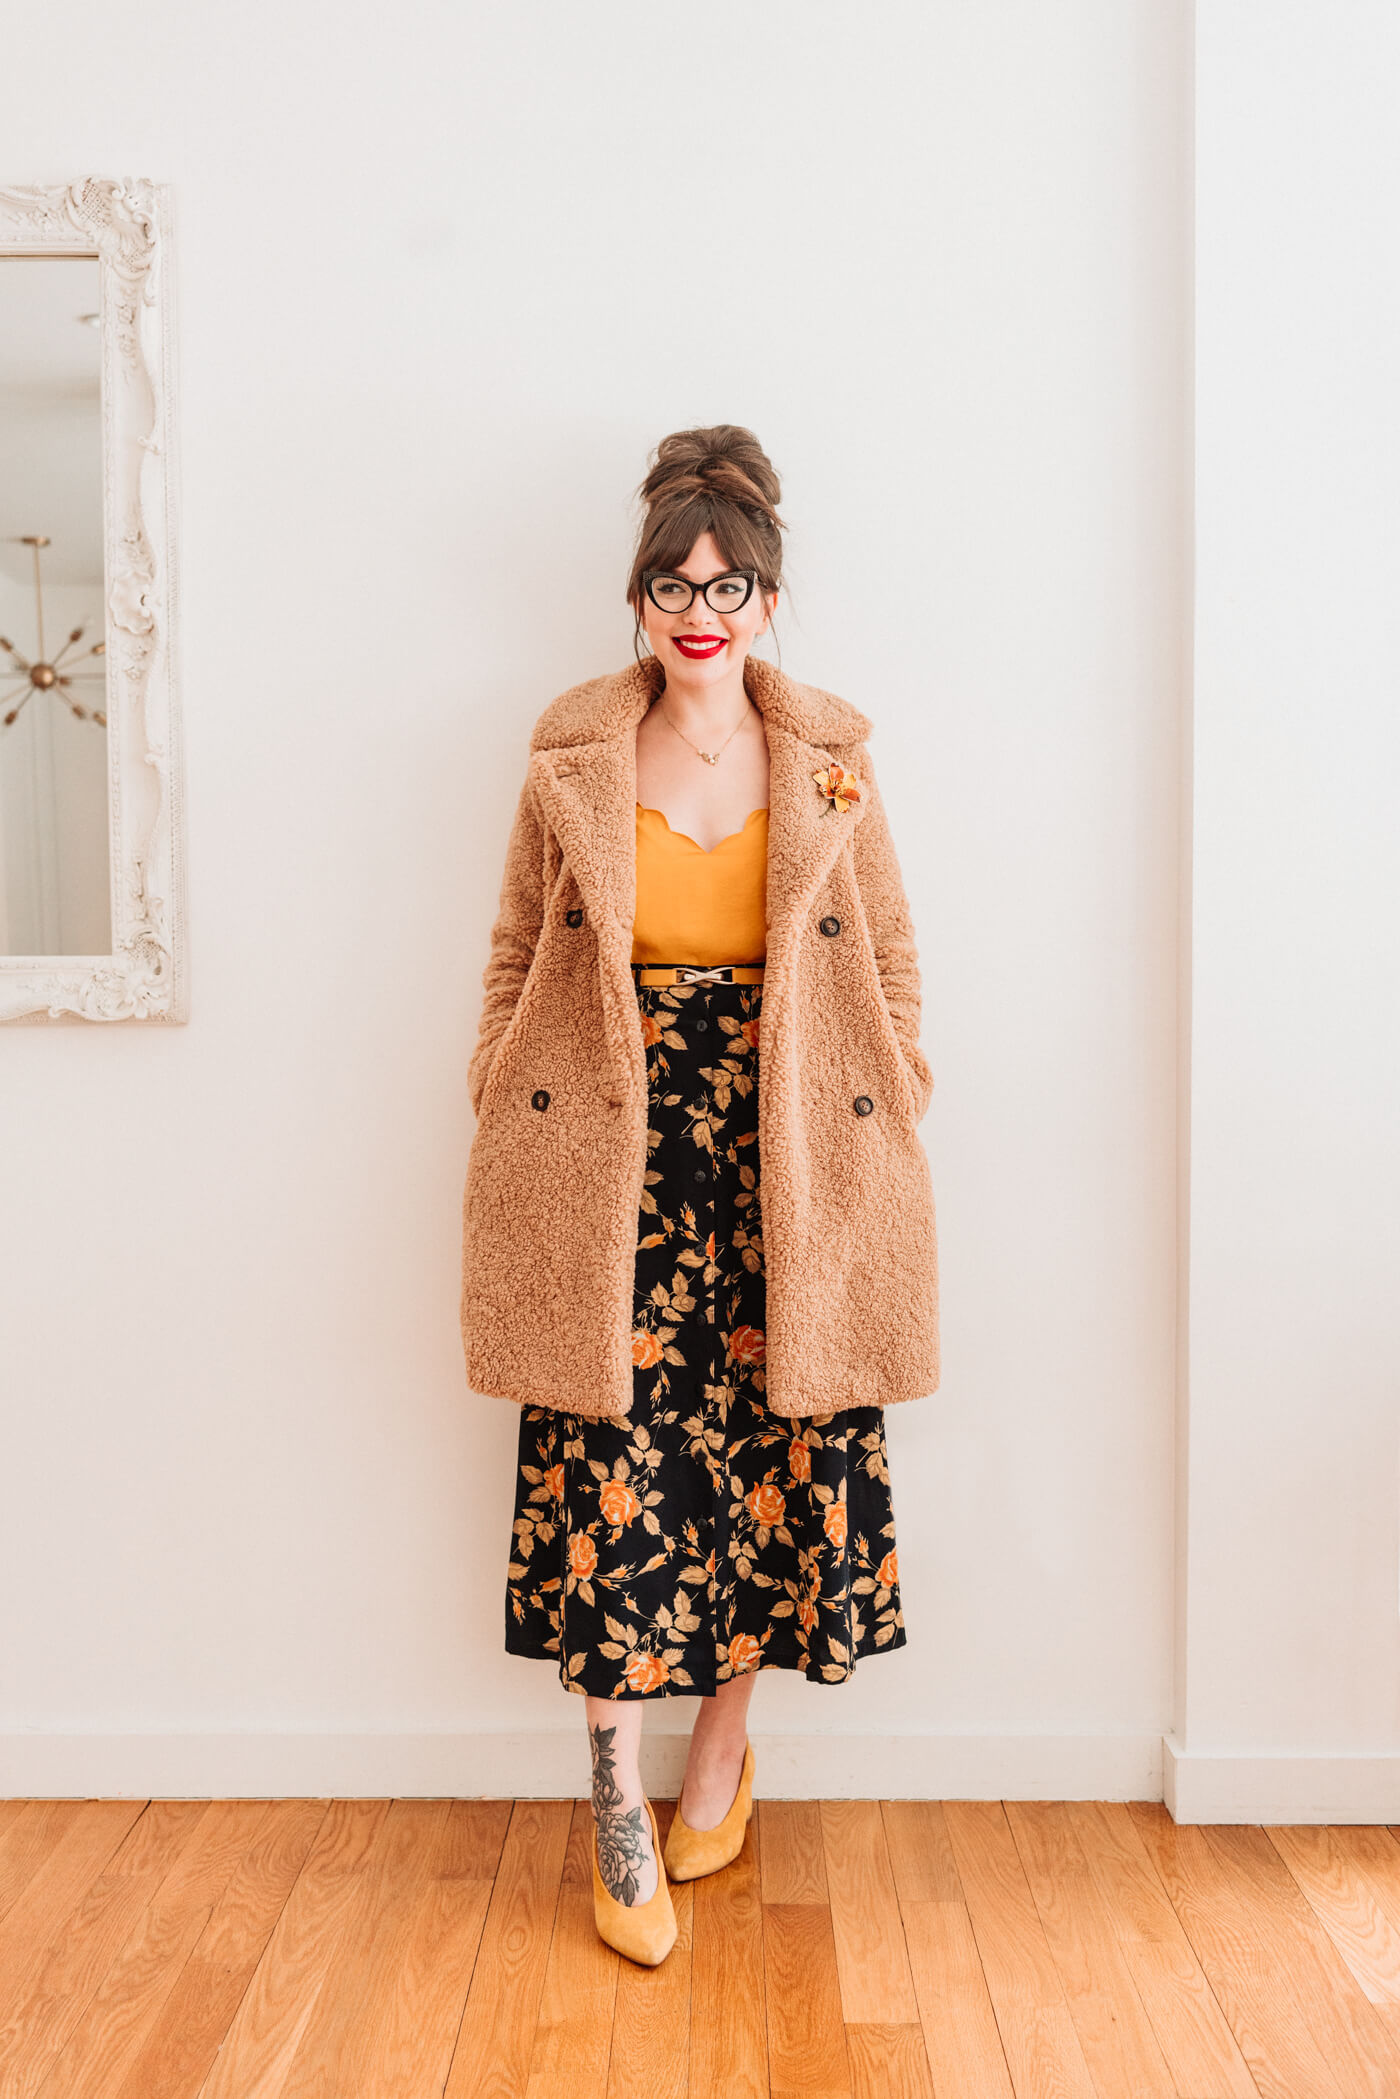 4 ways to style a teddy coat